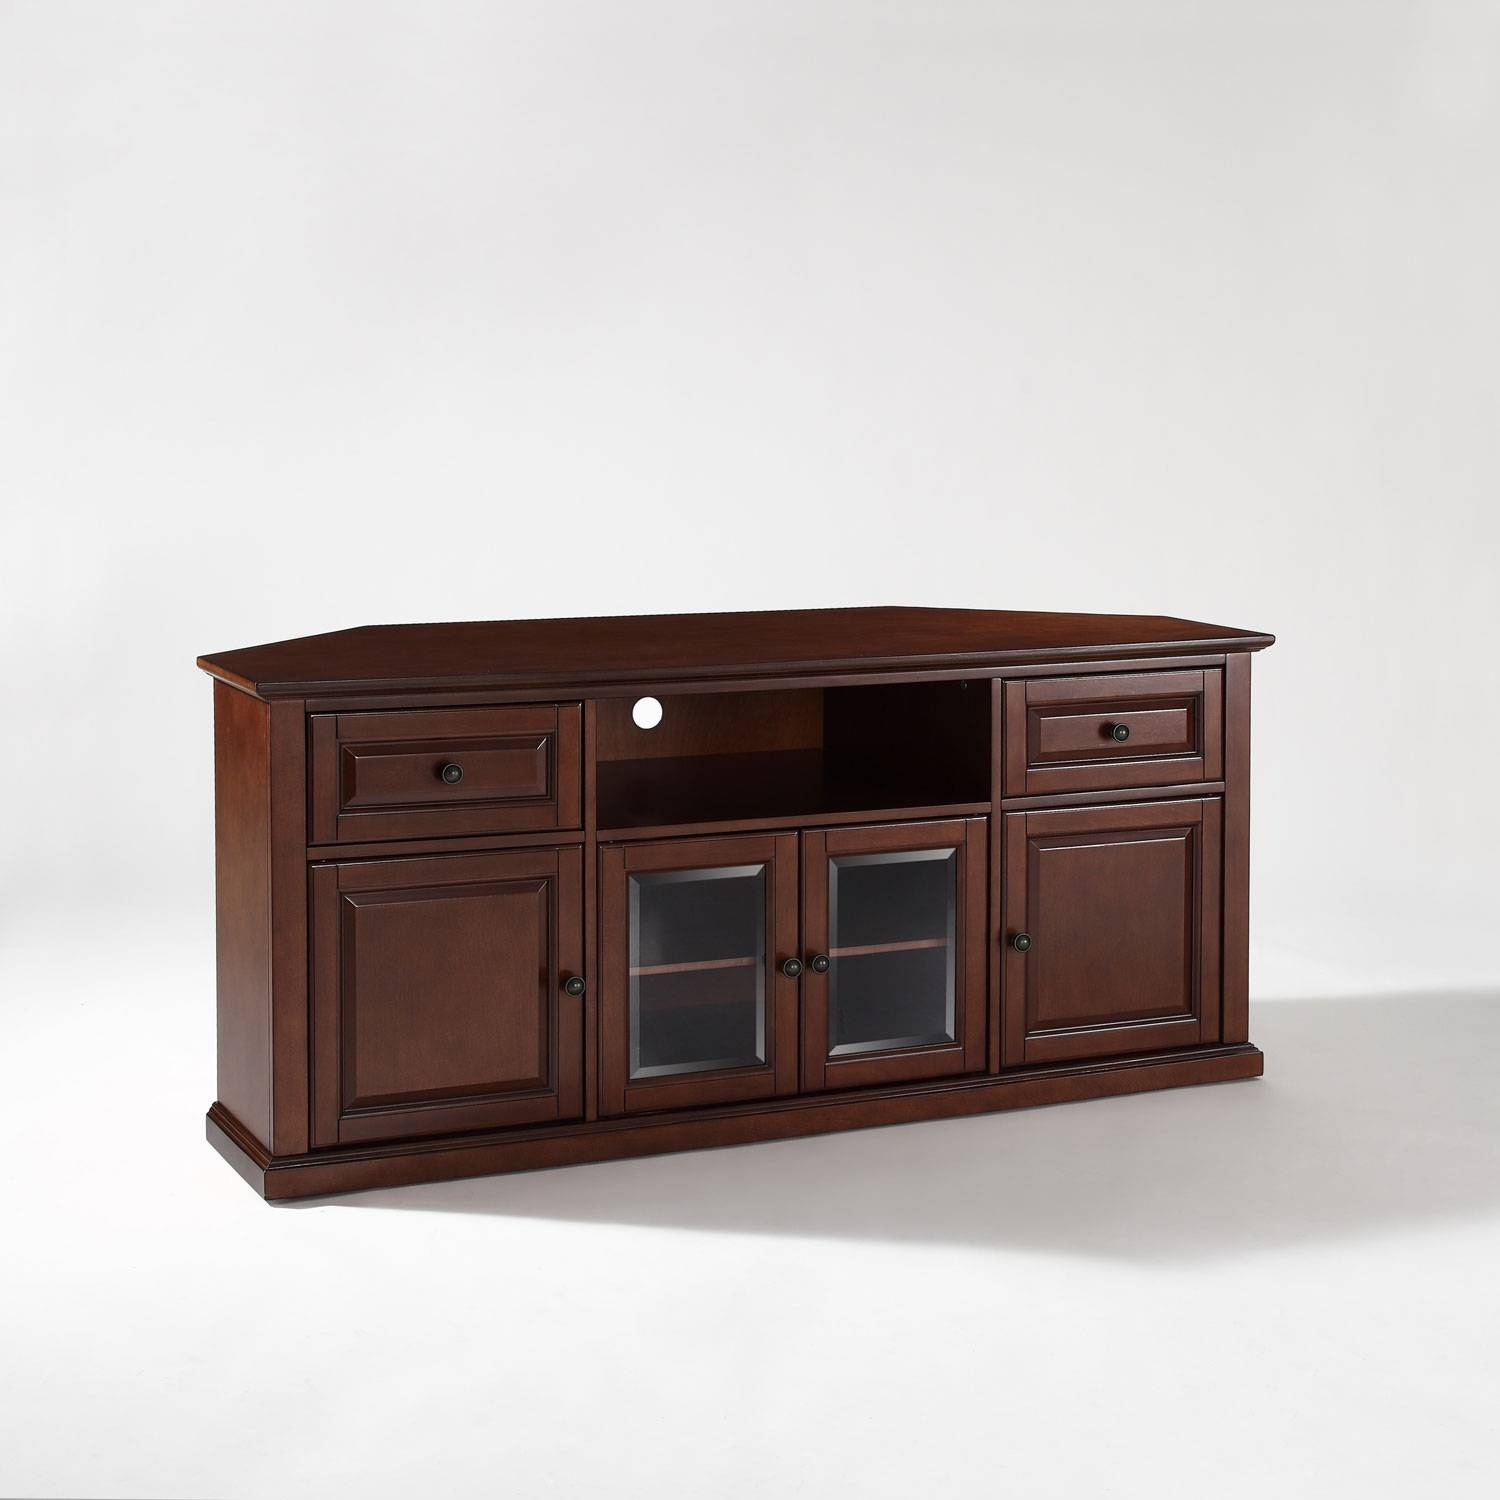 Tv Stands & Cabinets On Sale | Bellacor intended for Small Oak Corner Tv Stands (Image 14 of 15)